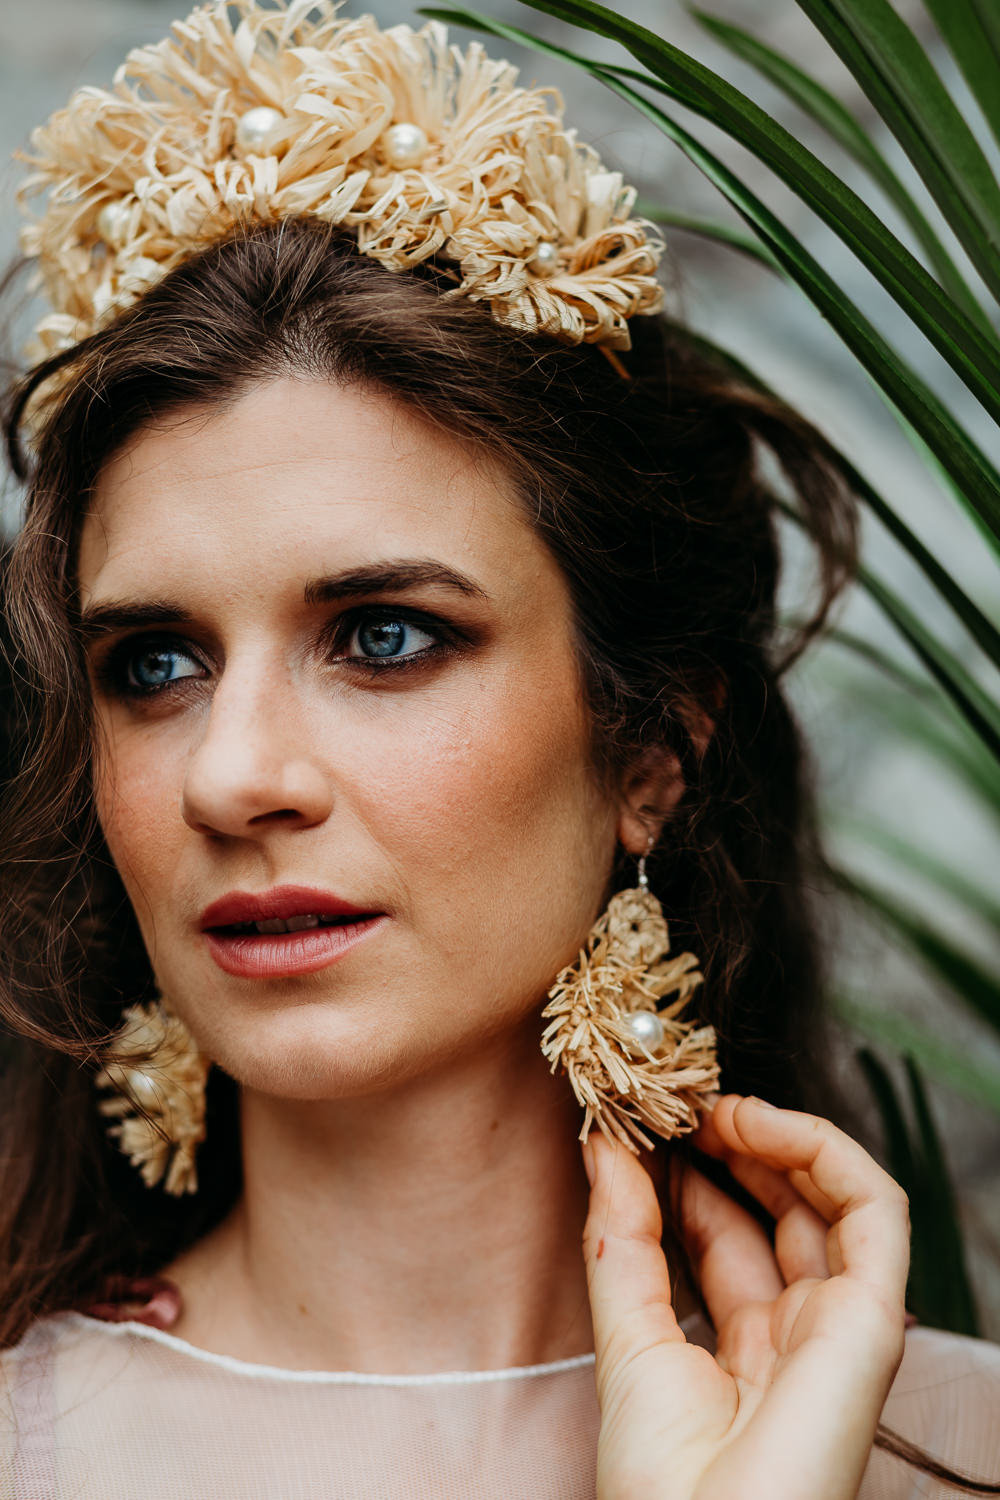 Bride Bridal Crown Tiara Earrings Gold Make Up Raffia Tropical Wedding Ideas When Charlie Met Hannah